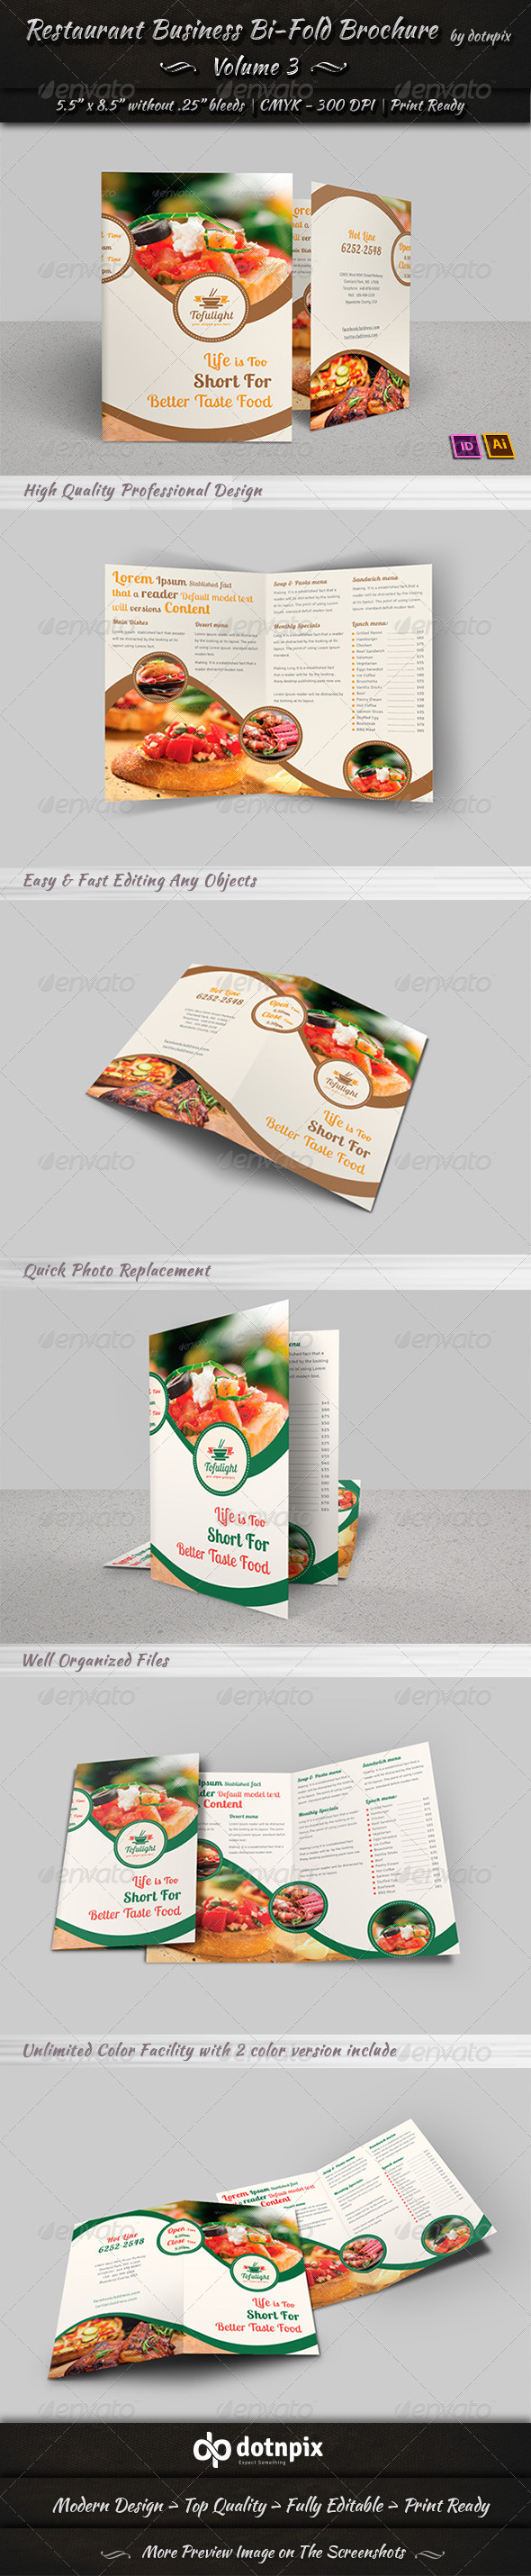 GraphicRiver Restaurant Business Bi-Fold Brochure Volume 3 6597415